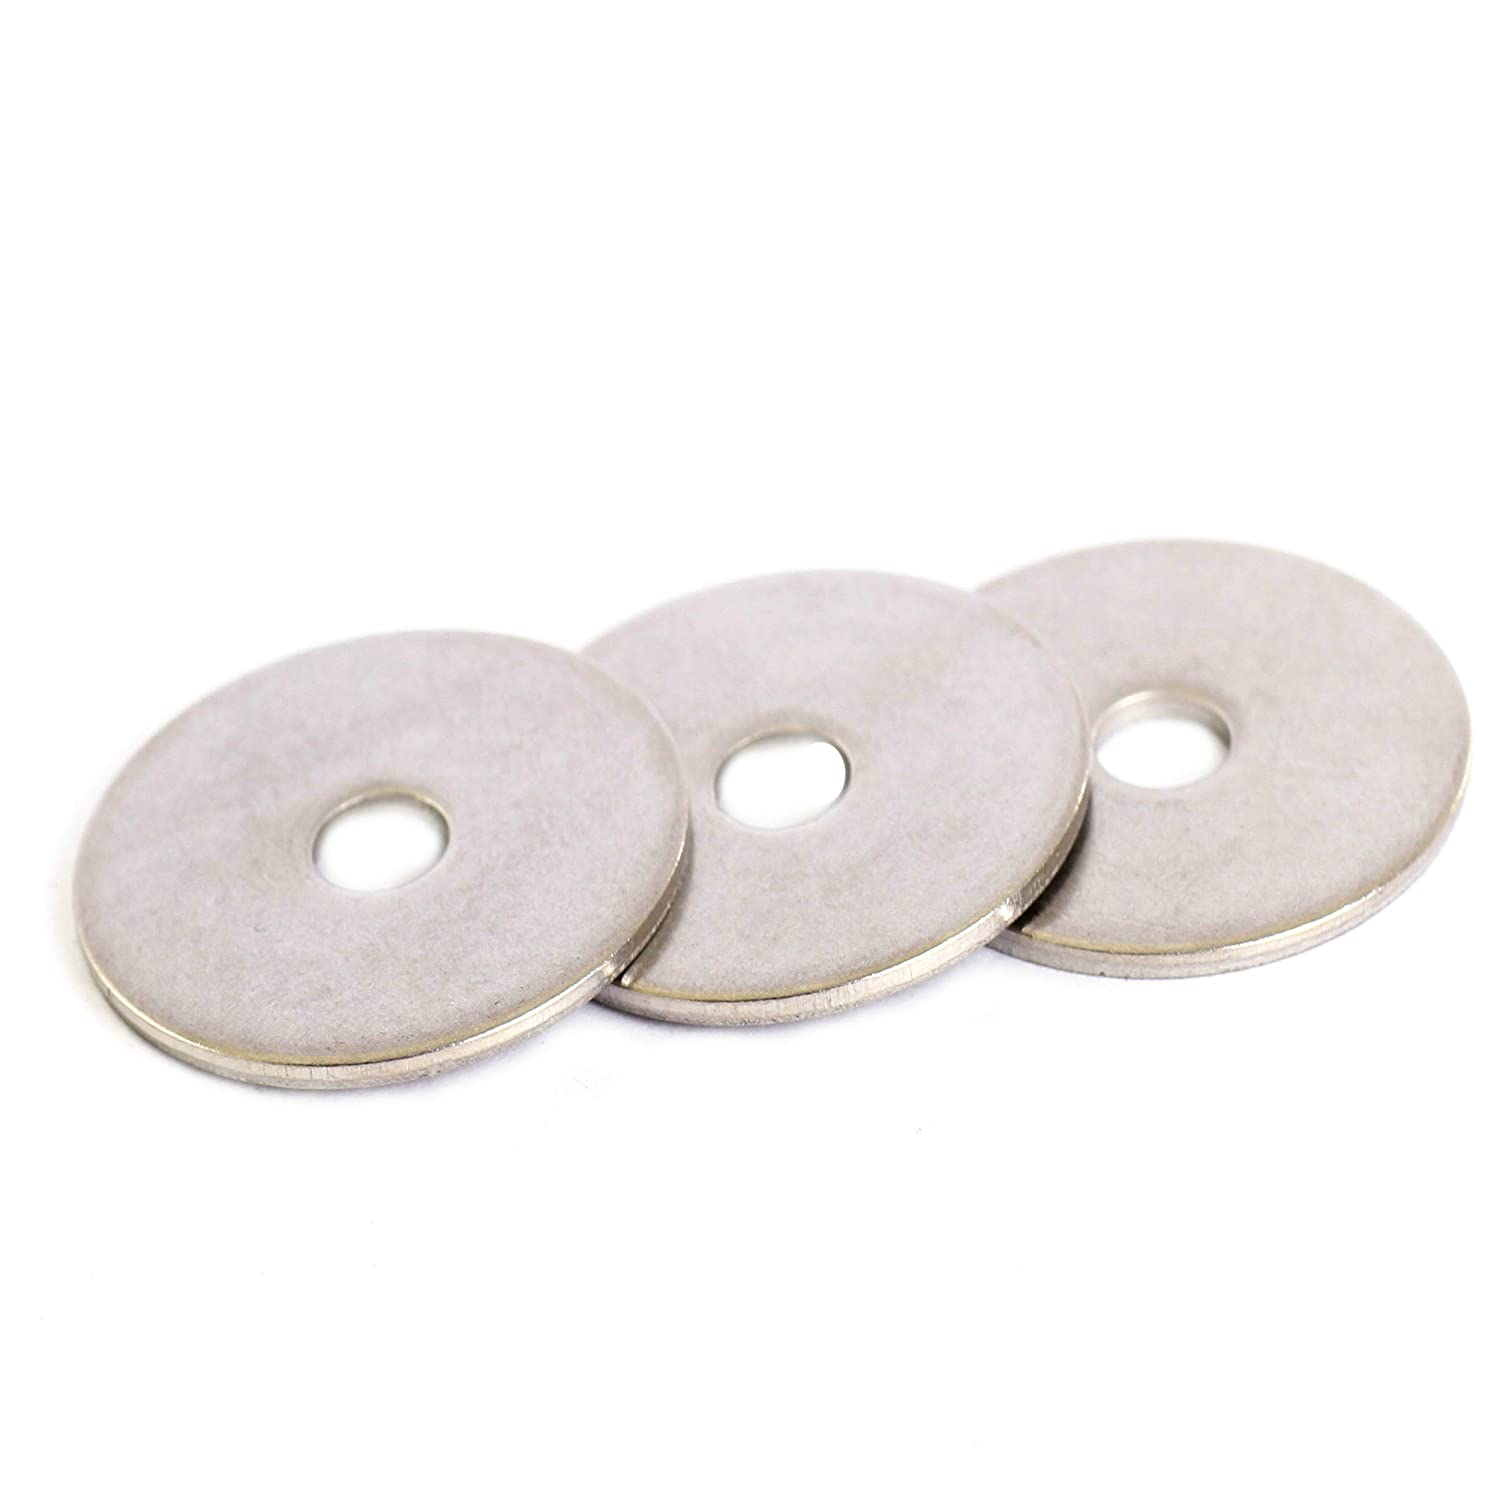 Bolt Base A2 Stainless Steel Penny Repair Washers Mudguard Washer M6 x 35 x 1.5mm Thick - 50